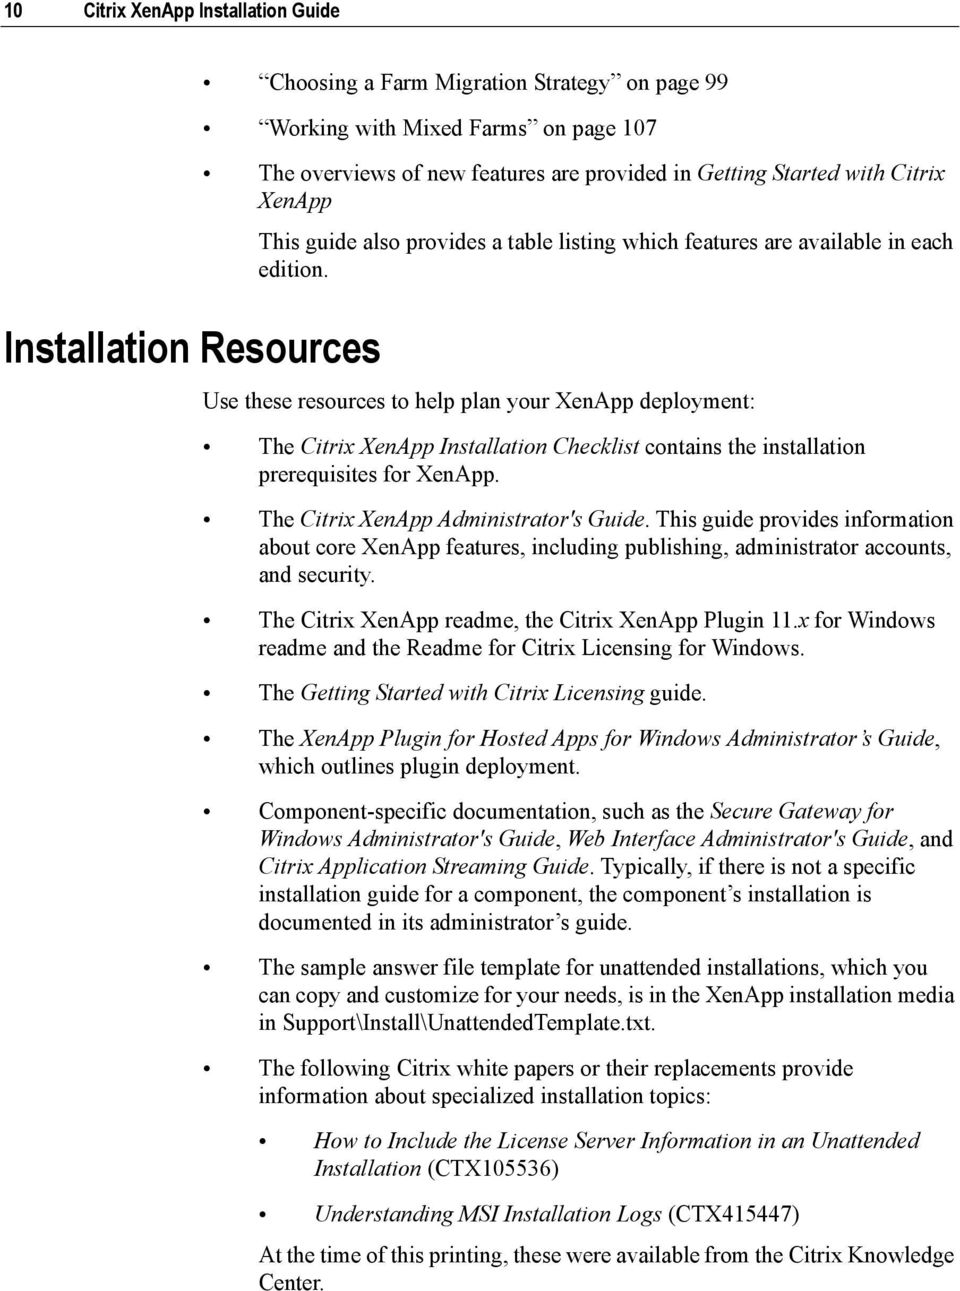 Use these resources to help plan your XenApp deployment: The Citrix XenApp Installation Checklist contains the installation prerequisites for XenApp. The Citrix XenApp Administrator's Guide.